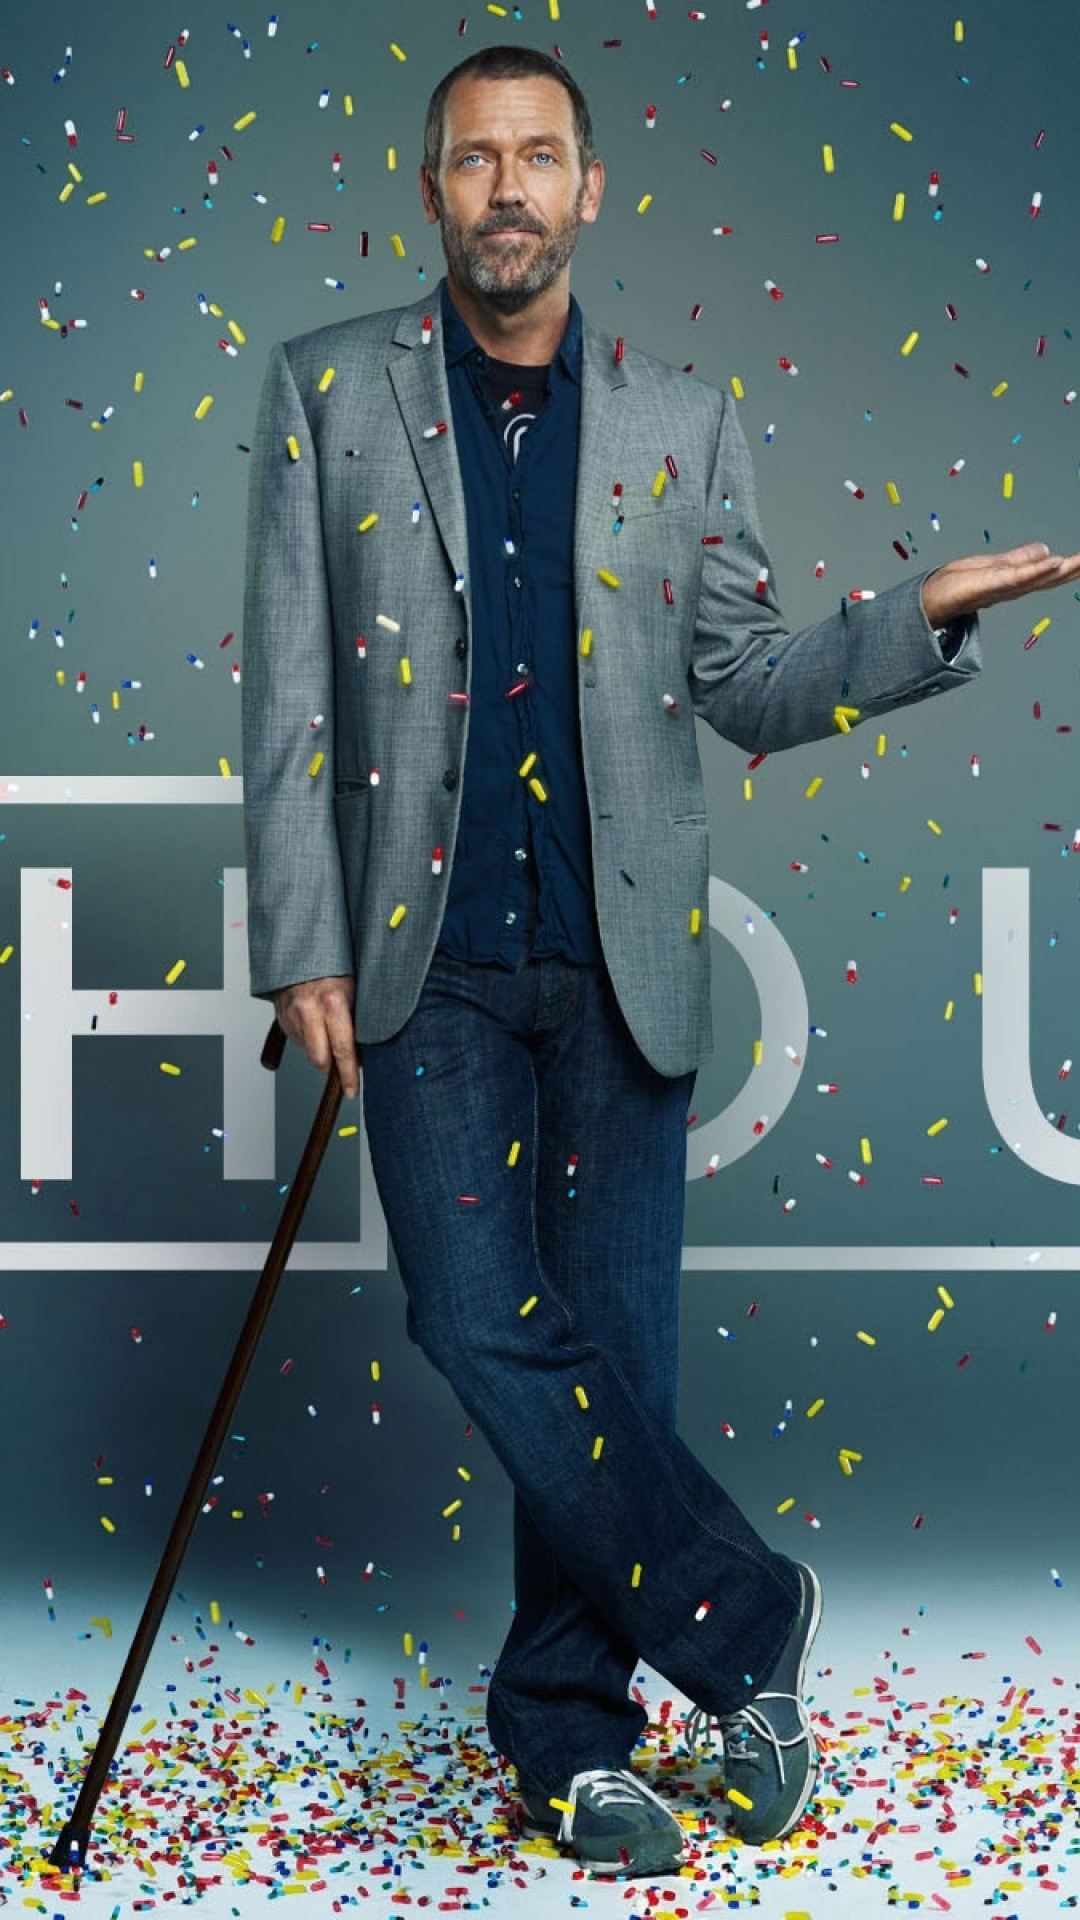 Wallpaper house md, doctor, tablets, hugh laurie, cane